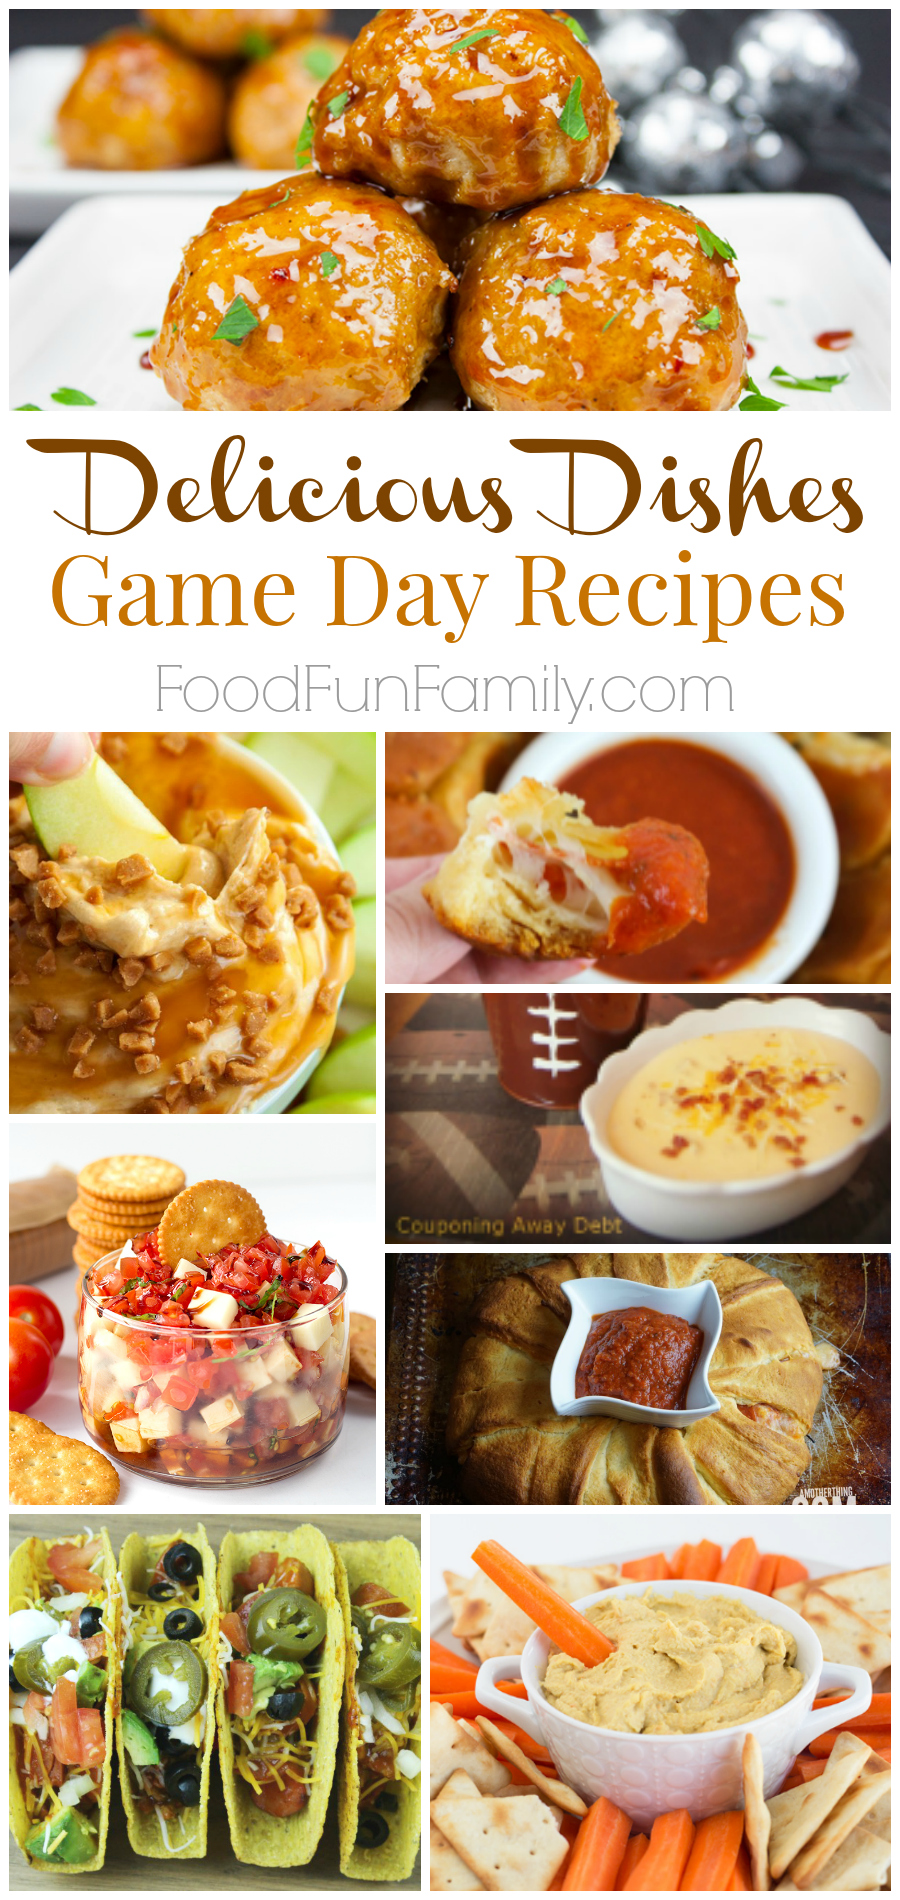 Delicious Dishes Game Day Recipes - all sorts of recipes that are perfect for your Big Game party!